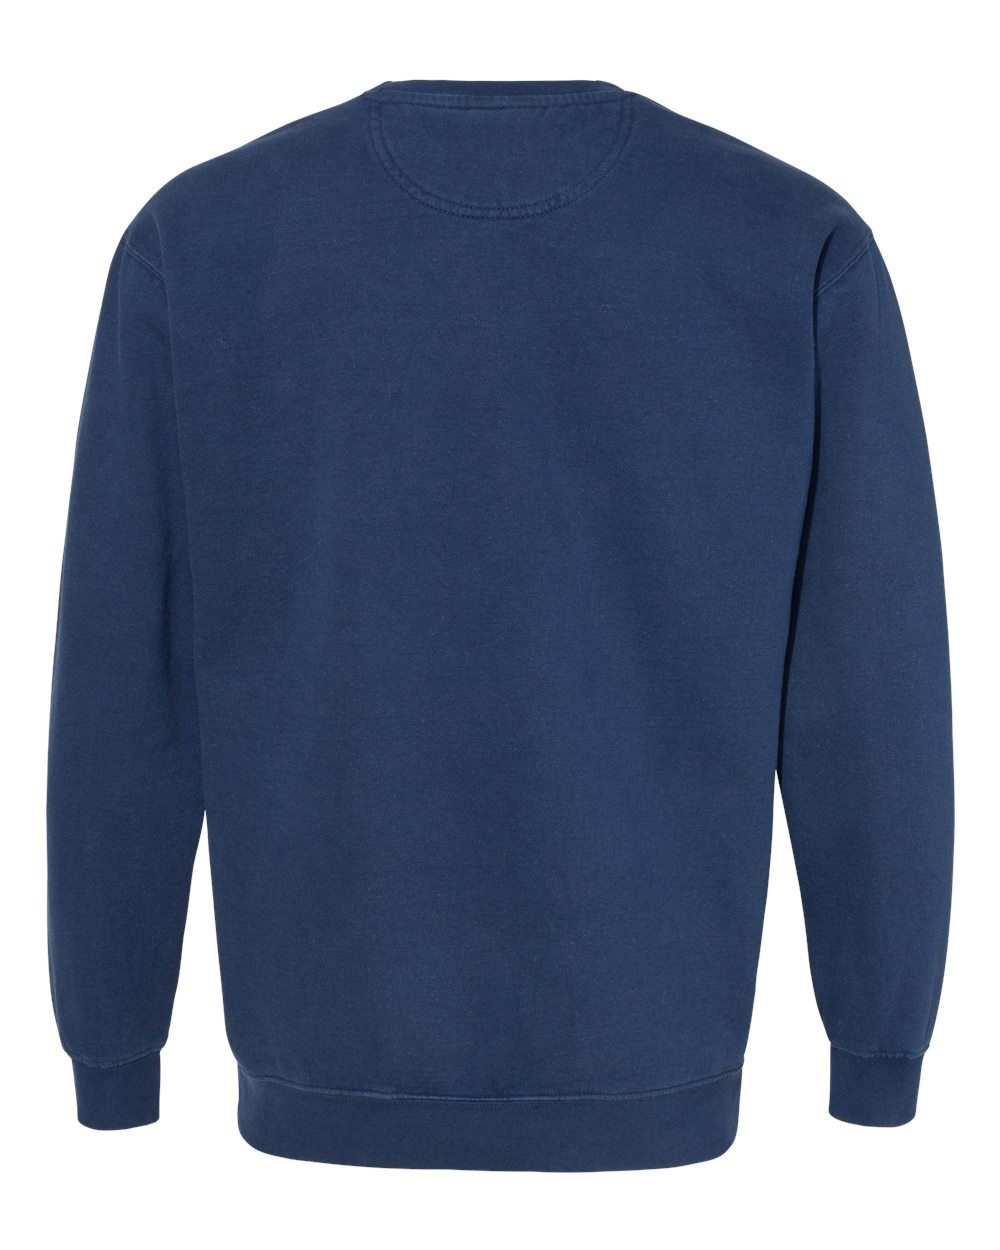 Comfort-Colors-Mens-Garment-Dyed-Ringspun-Crewneck-Sweatshirt-1566-up-to-3XL miniature 61